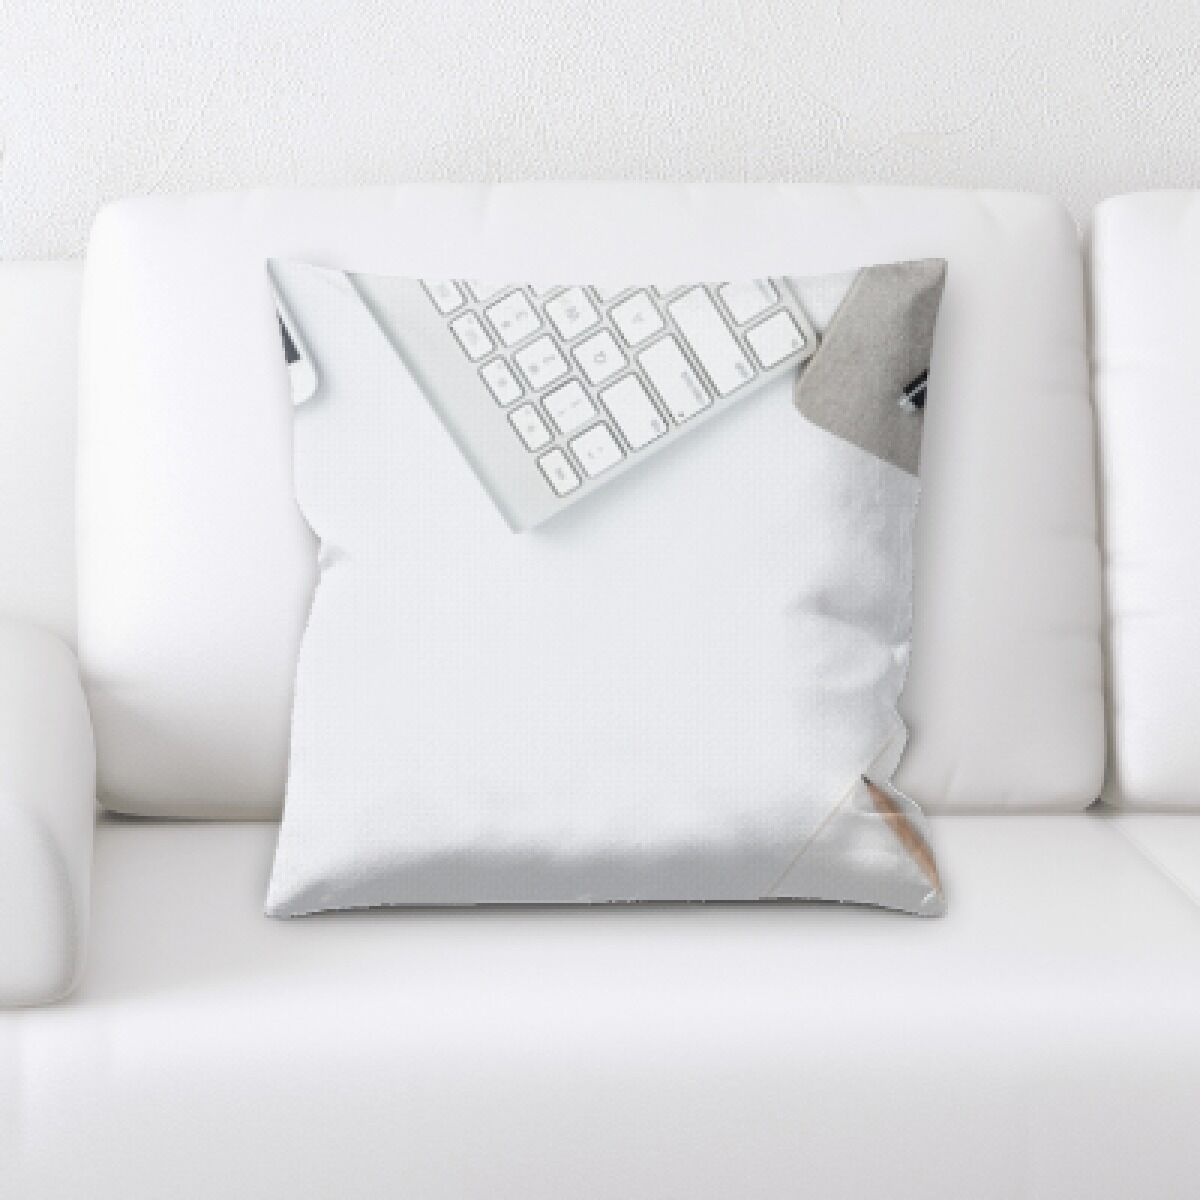 Burks Keyboard and Notebook Throw Pillow